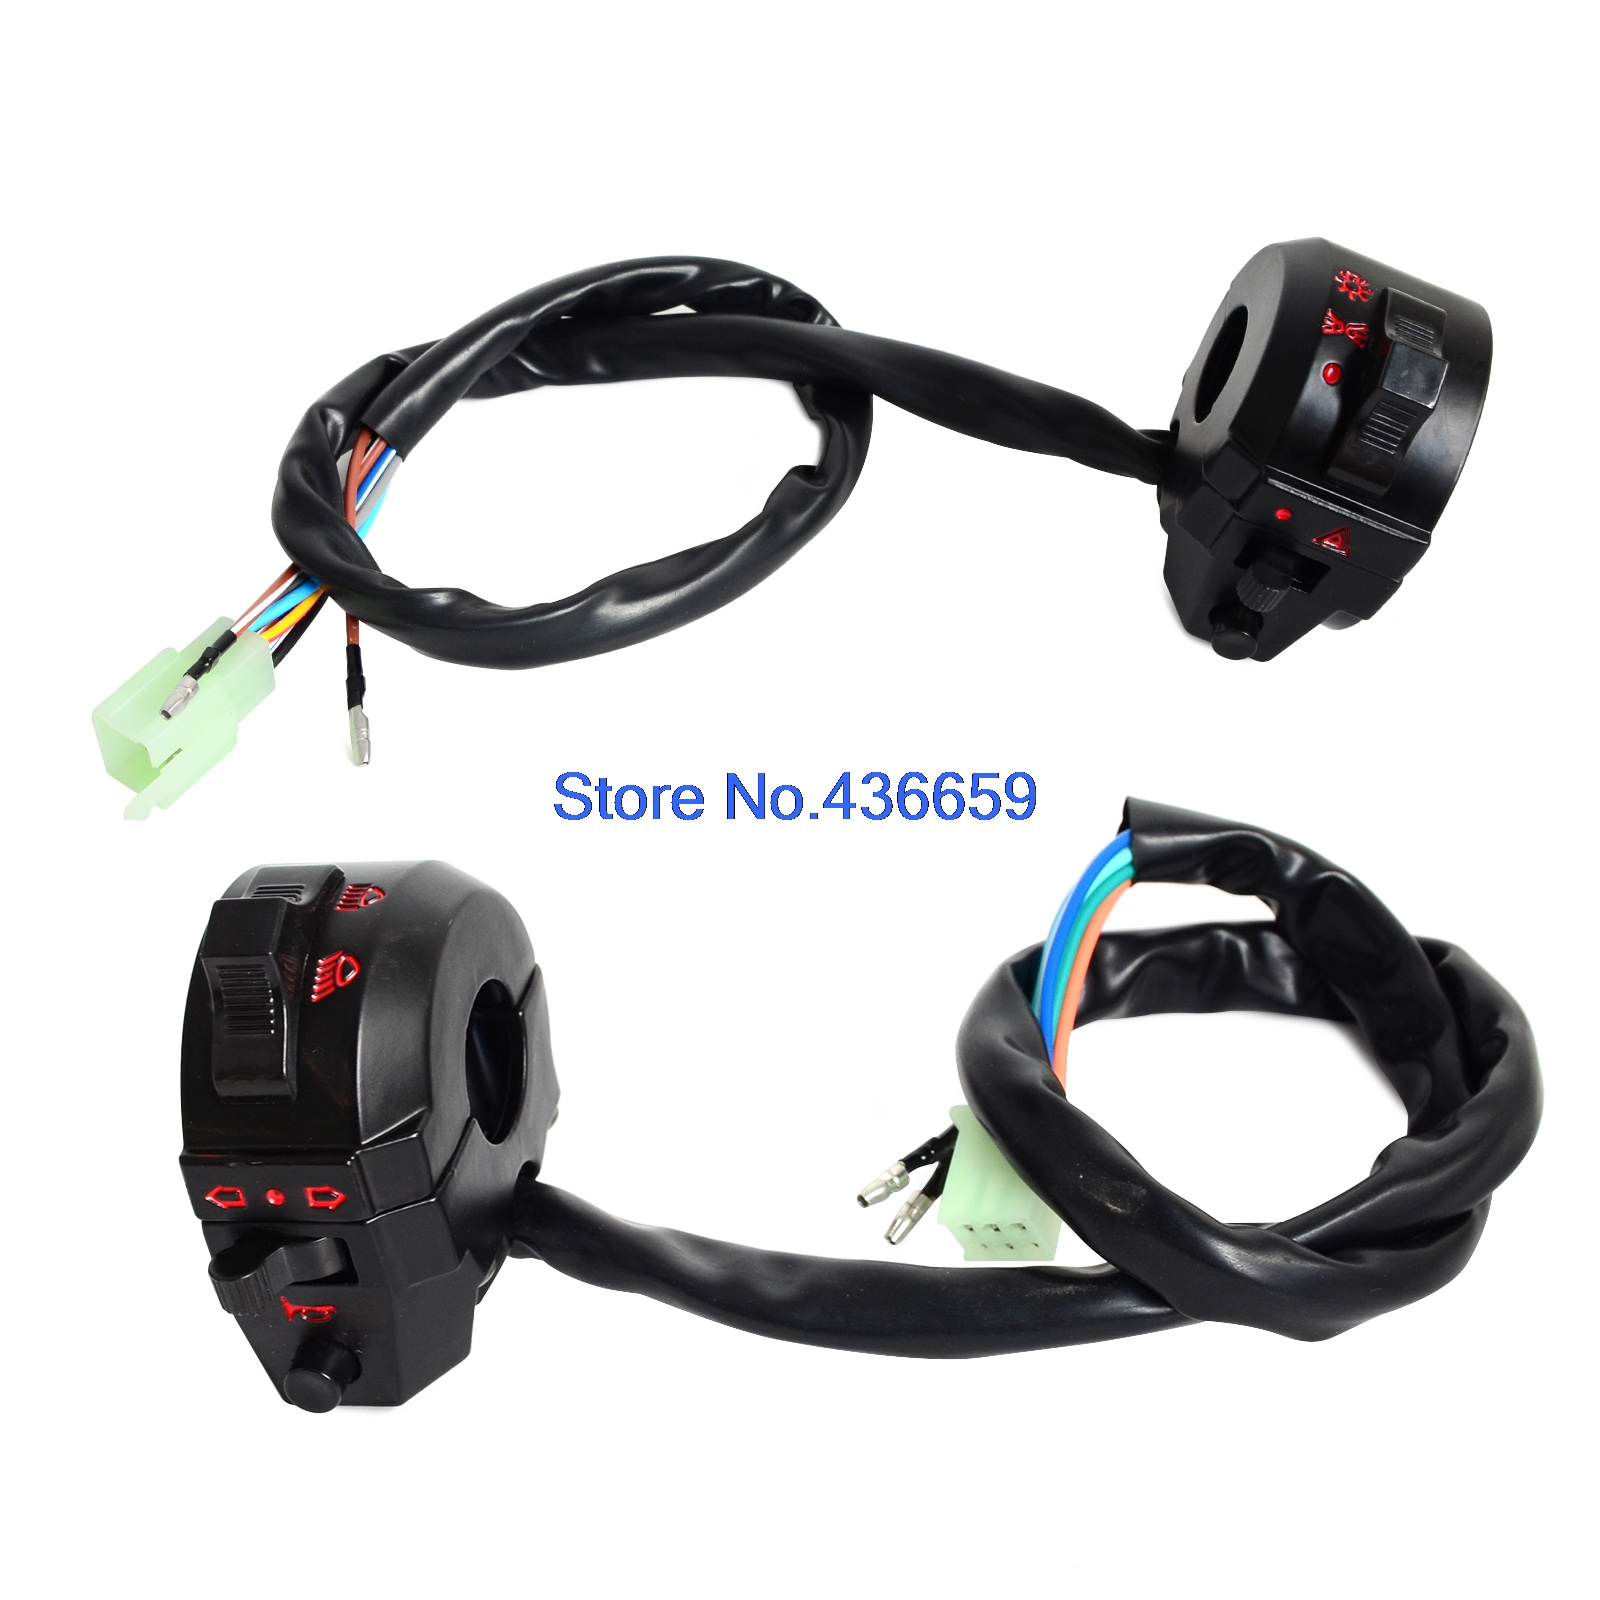 headlight switch motorcycle parrot ck3100 wiring diagram 7 8 quot handlebar horn turn signal